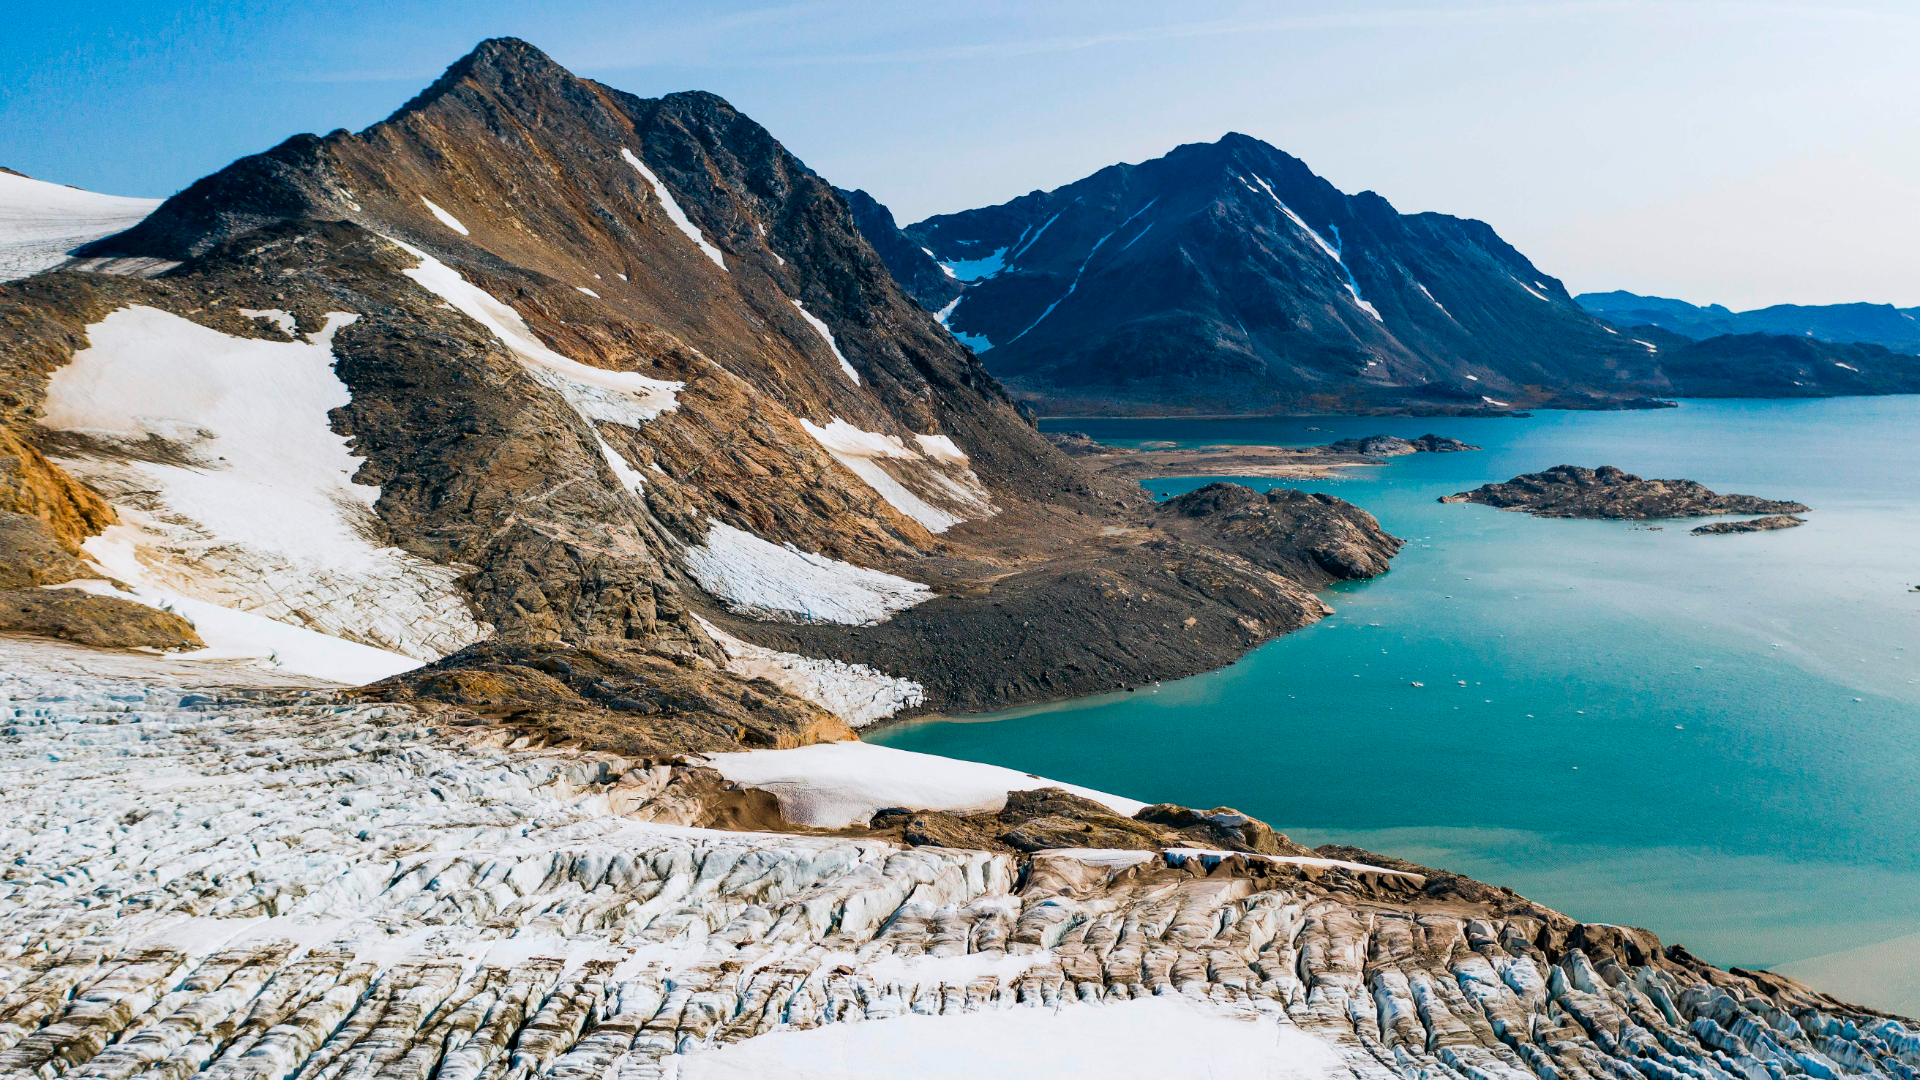 An aerial photo taken Aug. 17, 2019, shows a view of the Apusiajik glacier on the southeastern shore of Greenland. (Jonathan Nackstrand / AFP / Getty Images)